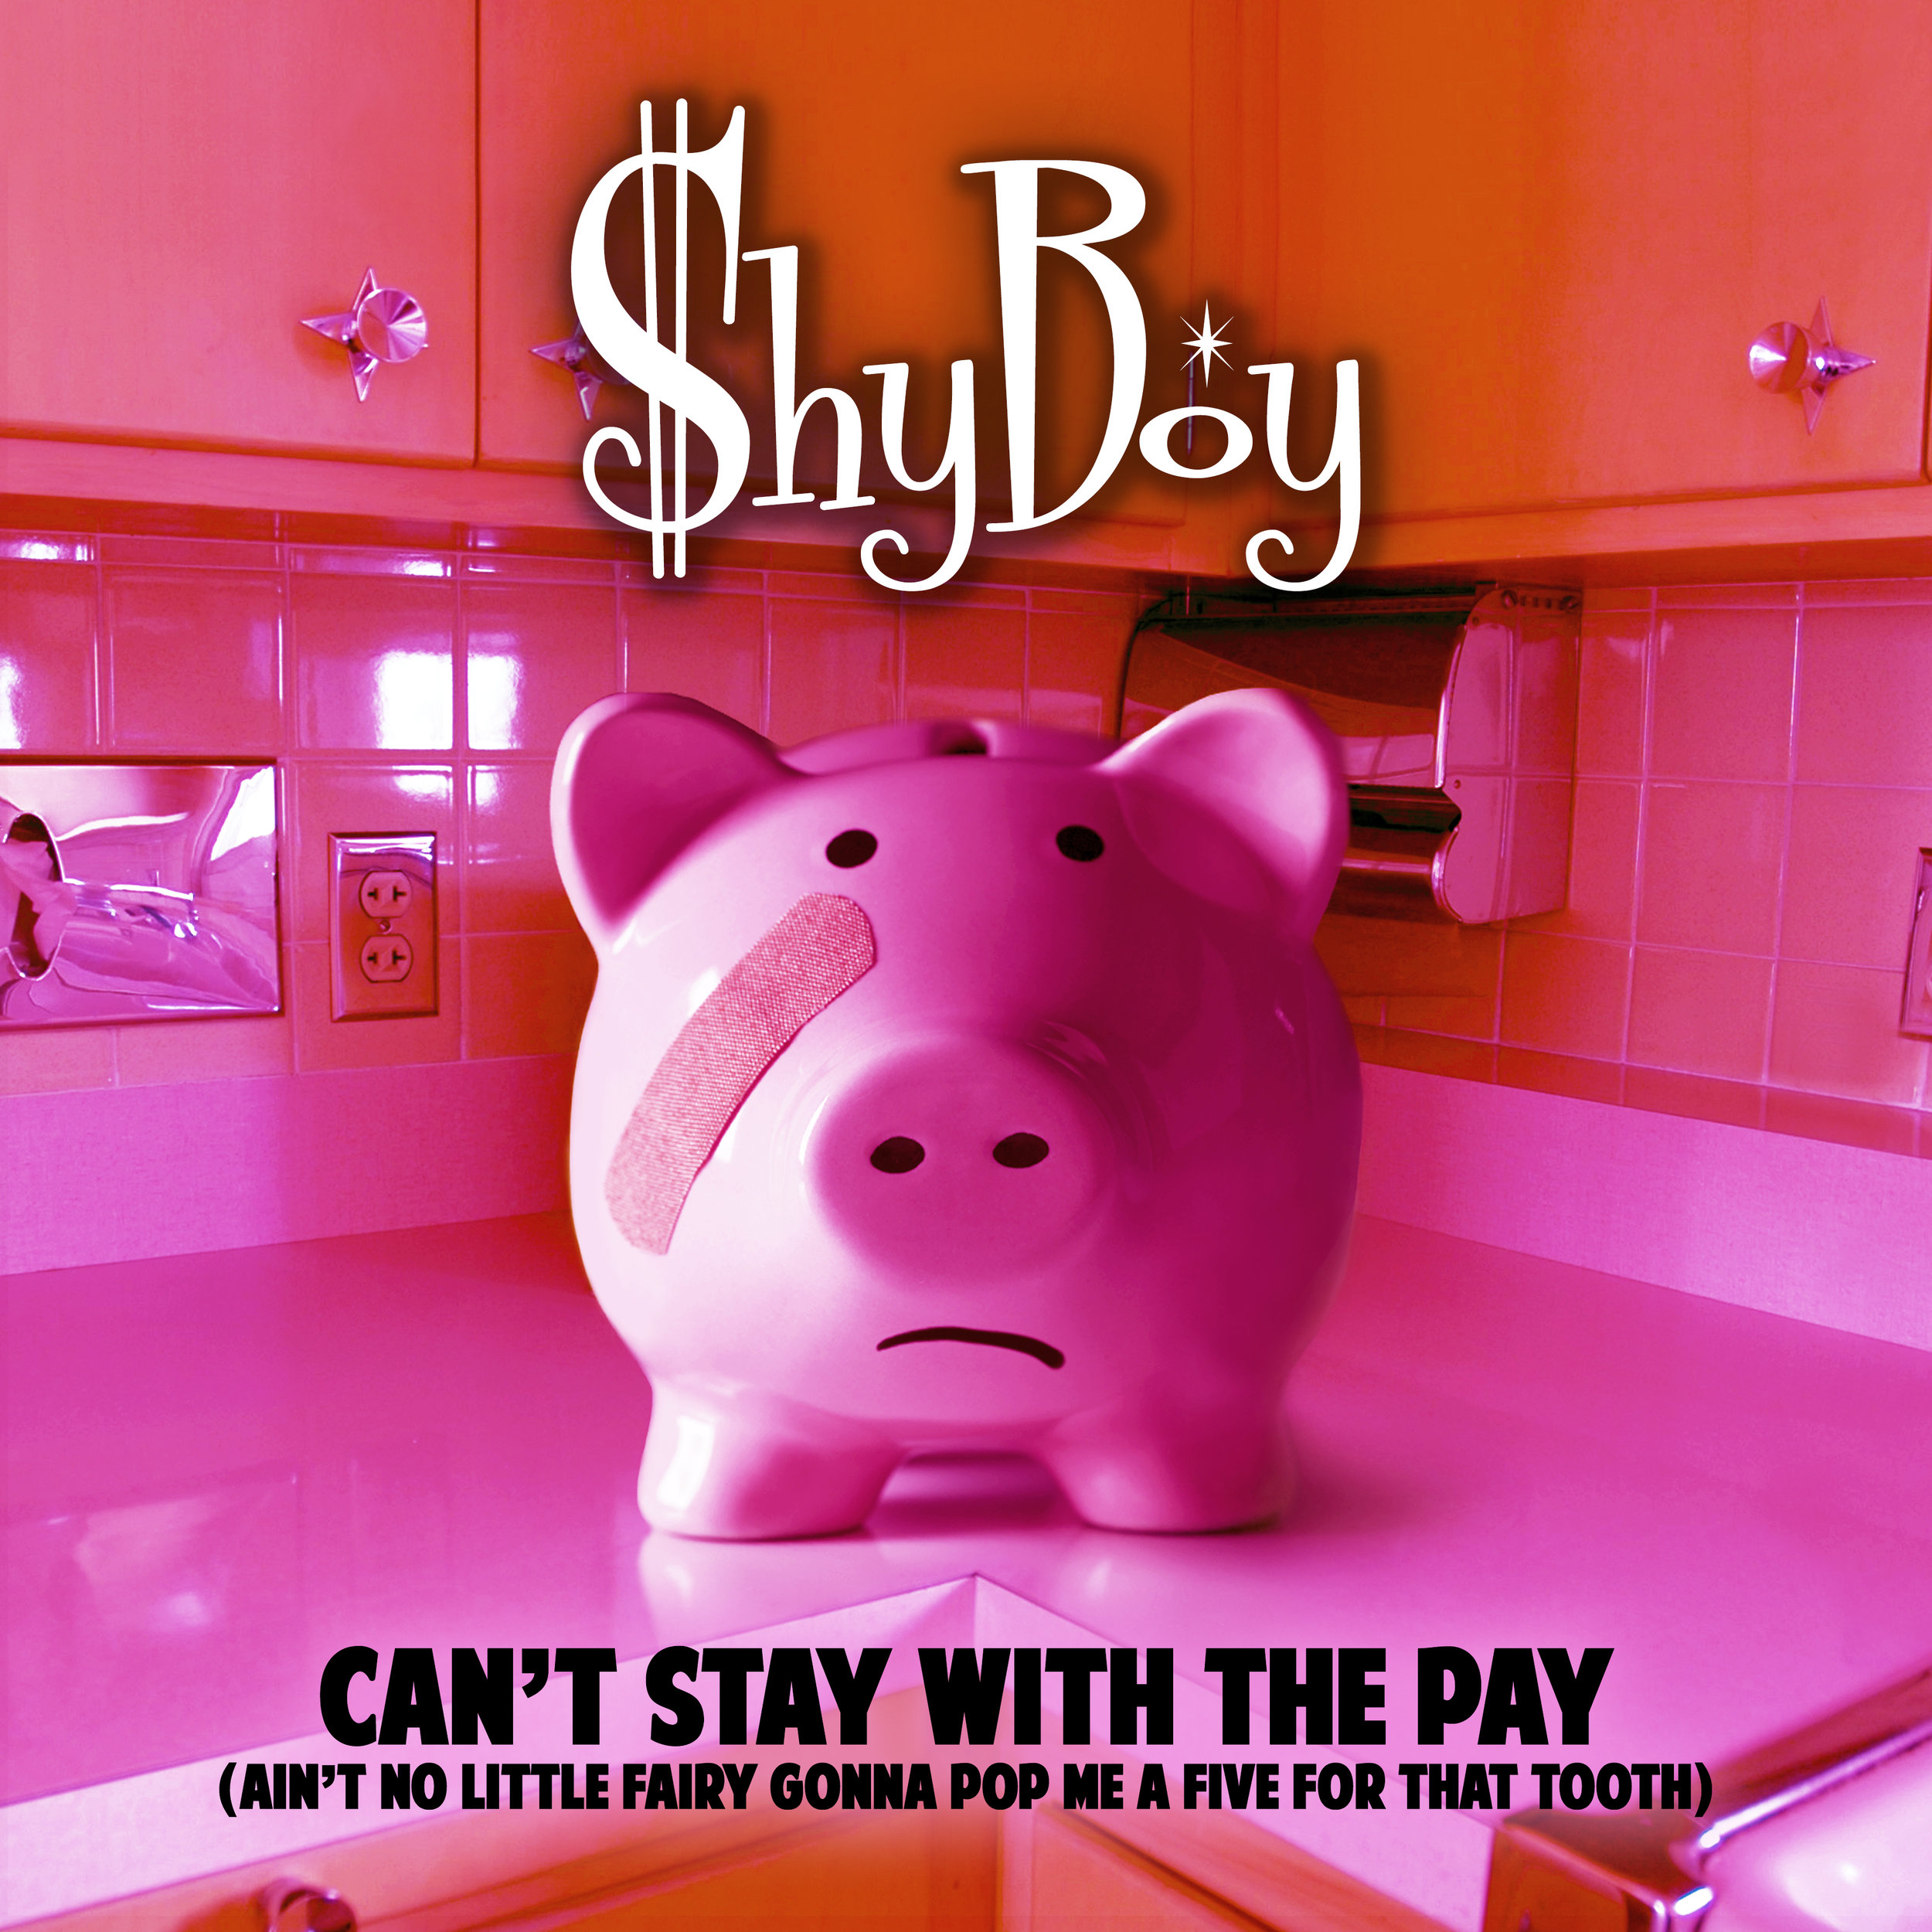 ShyBoy Cant Stay With The Pay - Single.jpg